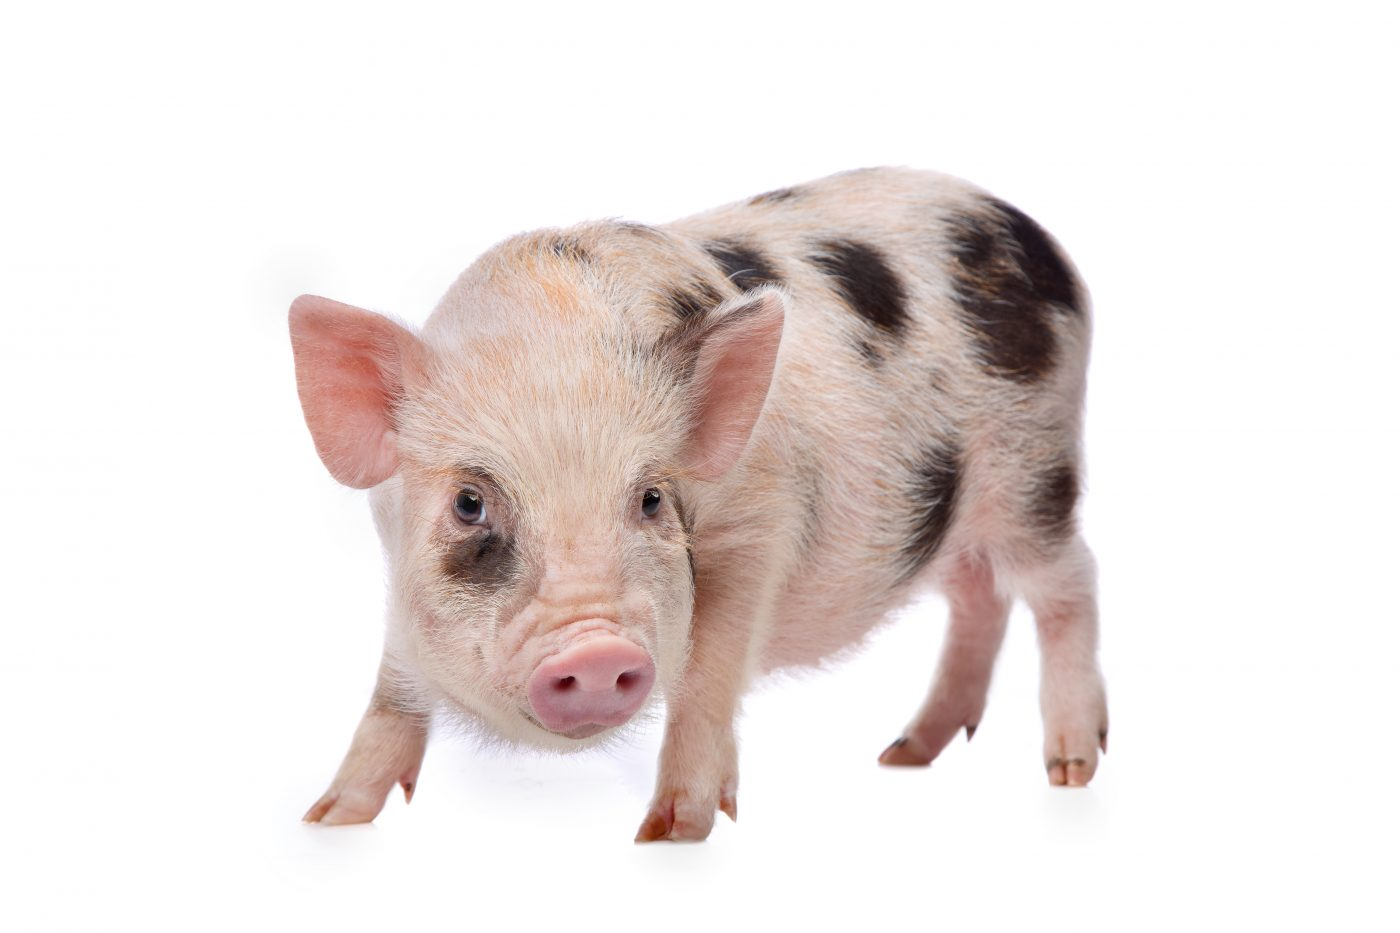 FDA Clears Genetically Engineered Mini Pig Model For Use in Research And Drug Development